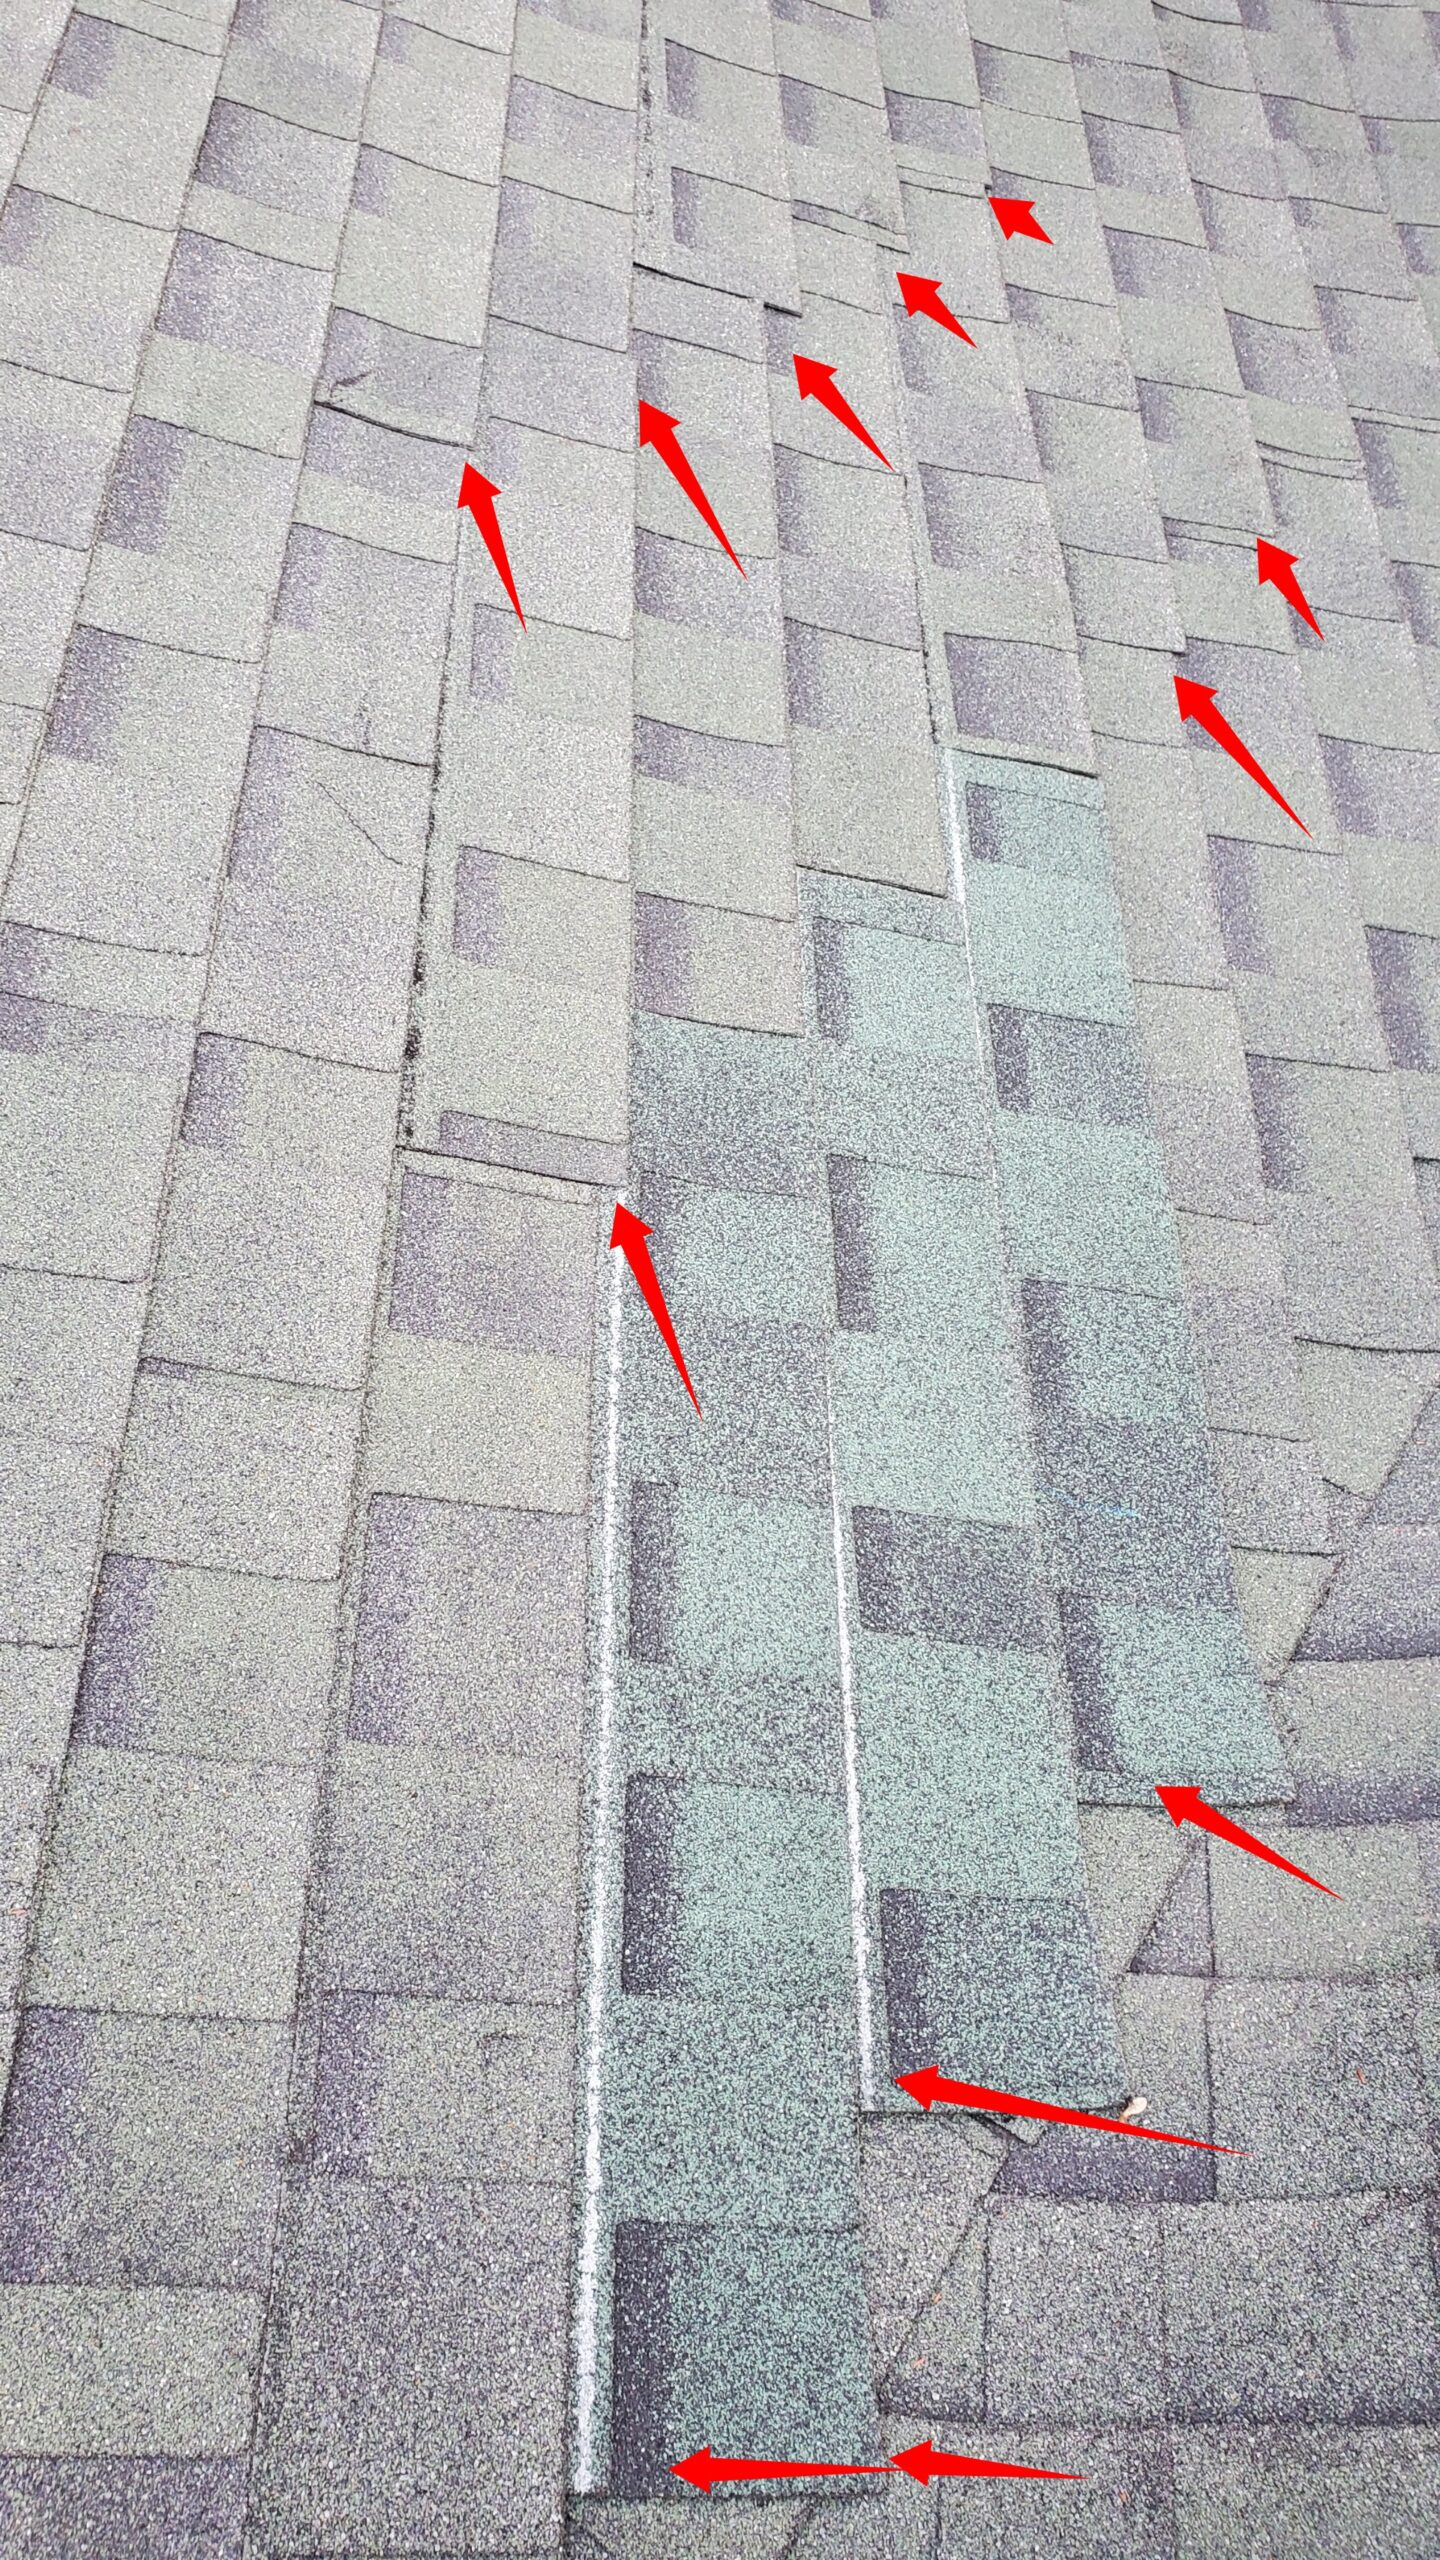 A picture of a roof with green shingles and red arrows pointing to the corners of the shingles.